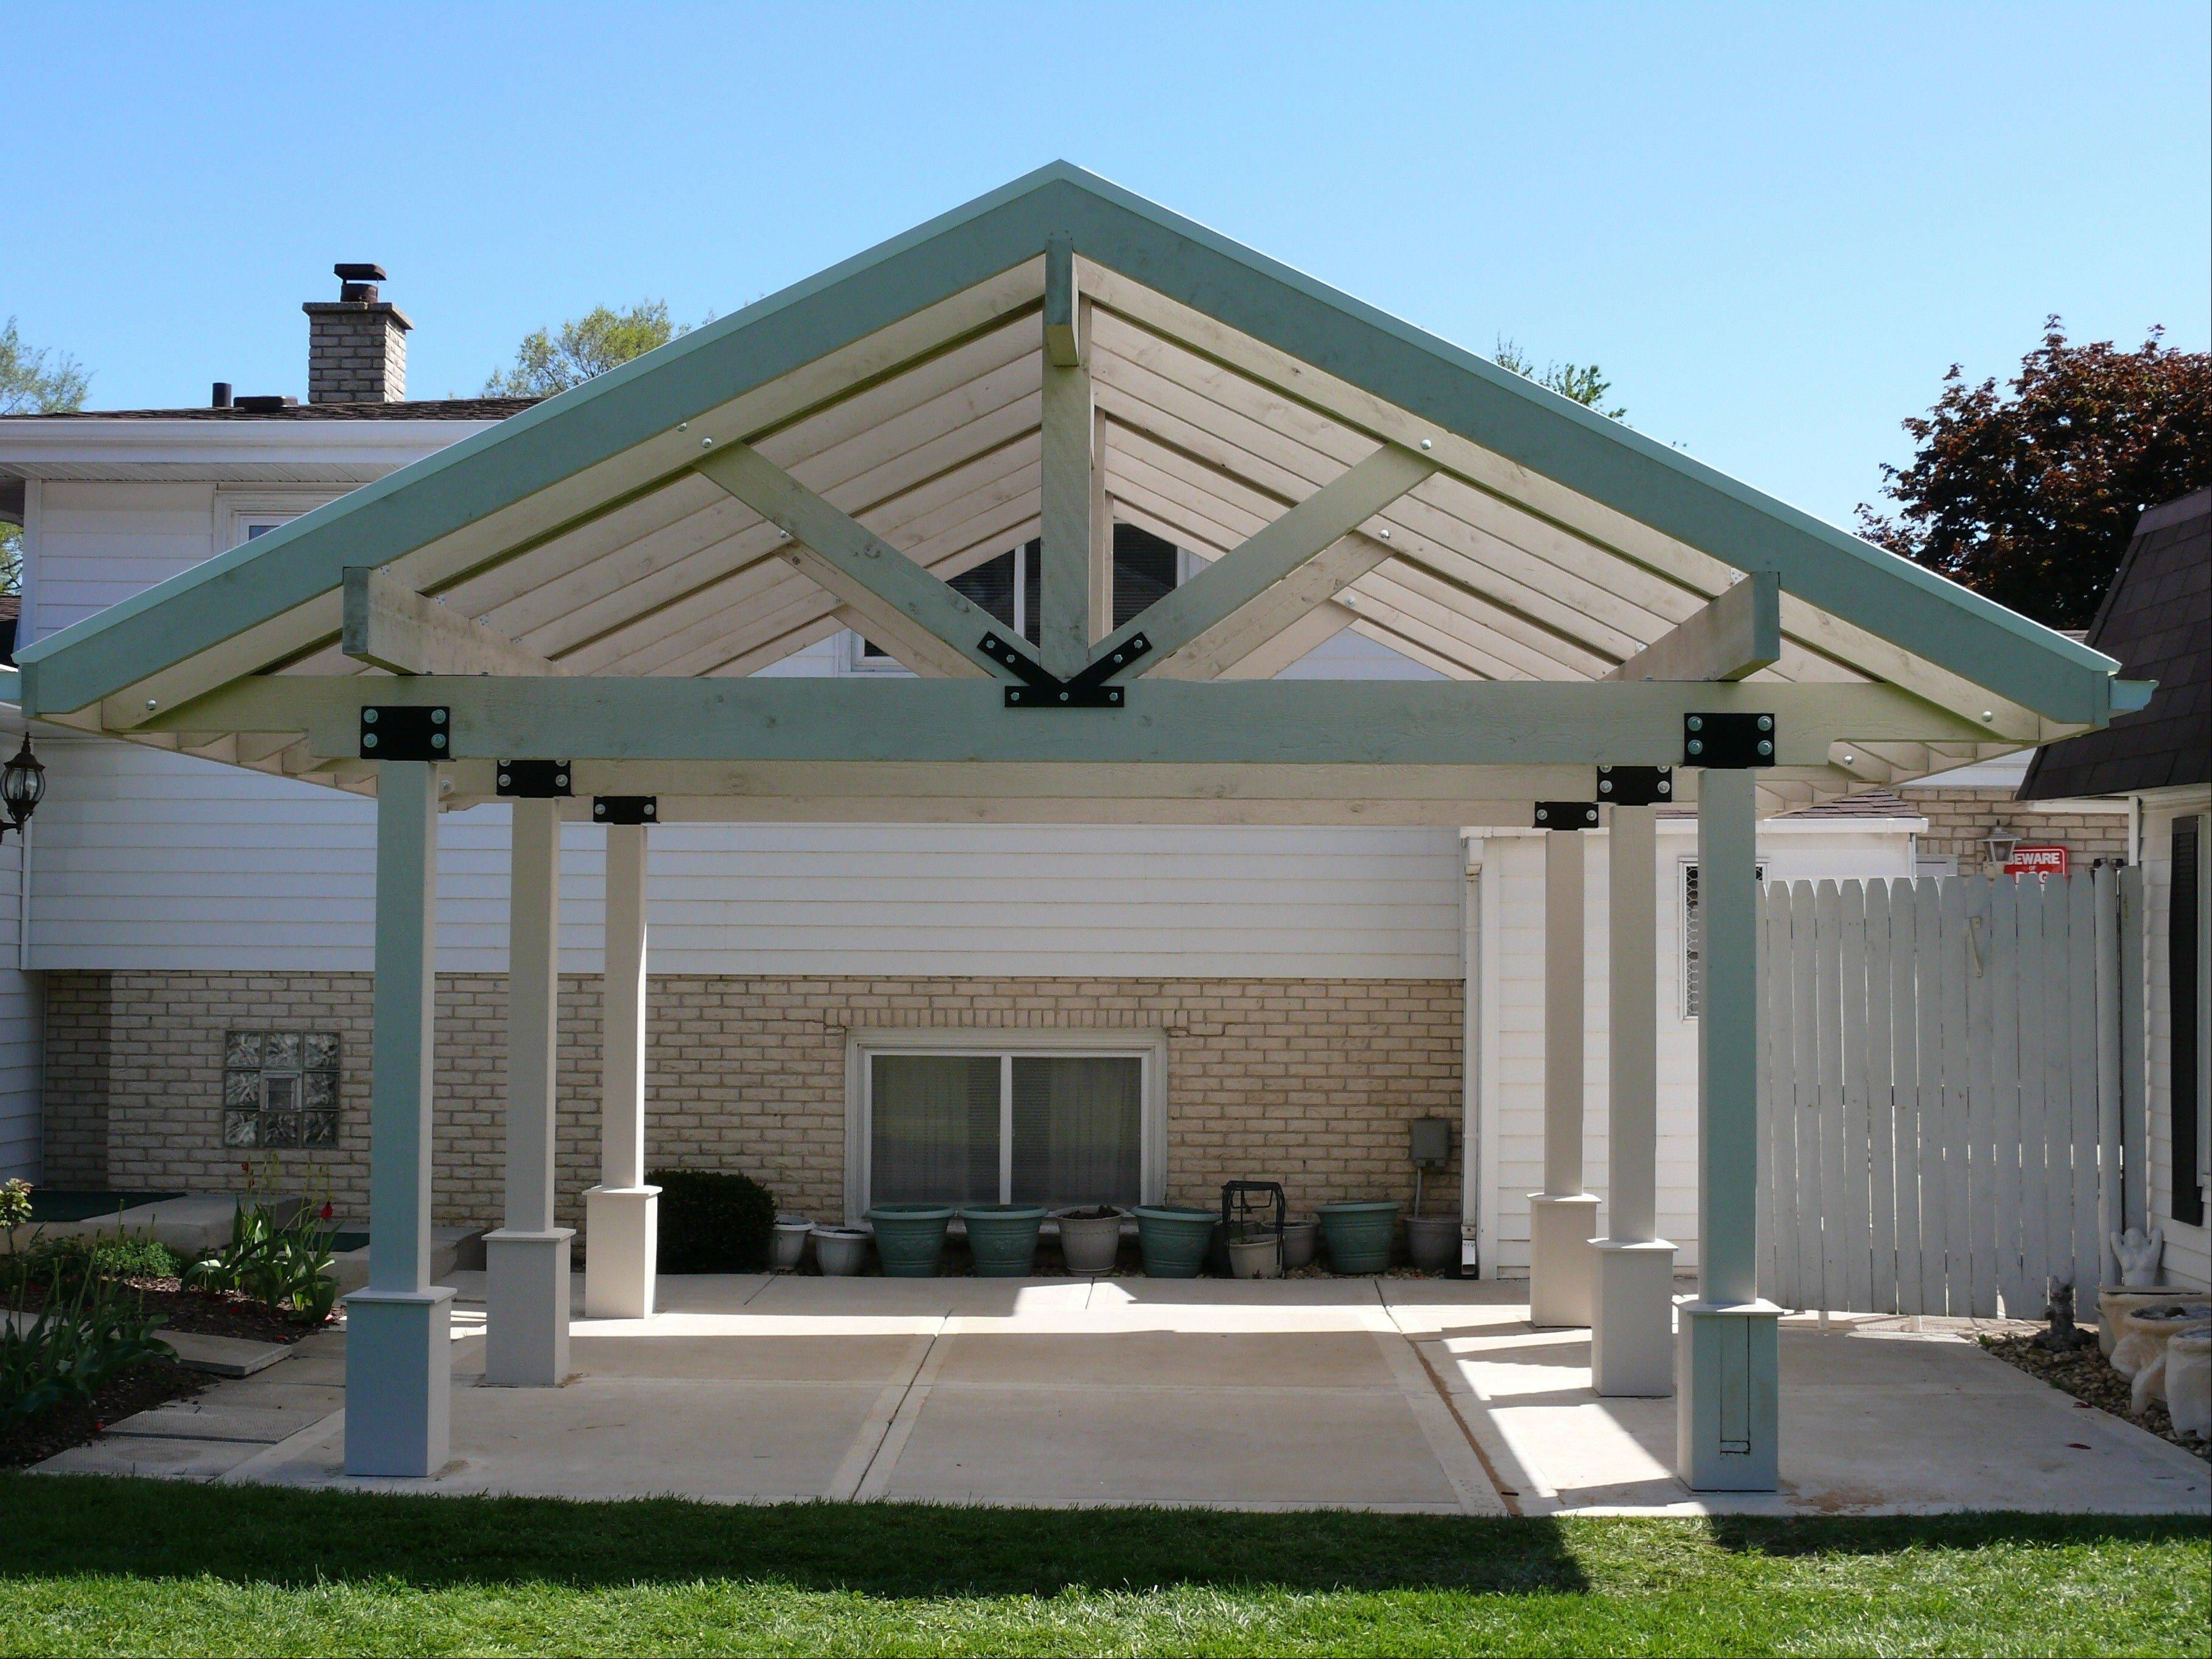 Timberbuilt also sells pergolas with a polycarbonate roof that provides some shading and protection from the rain.